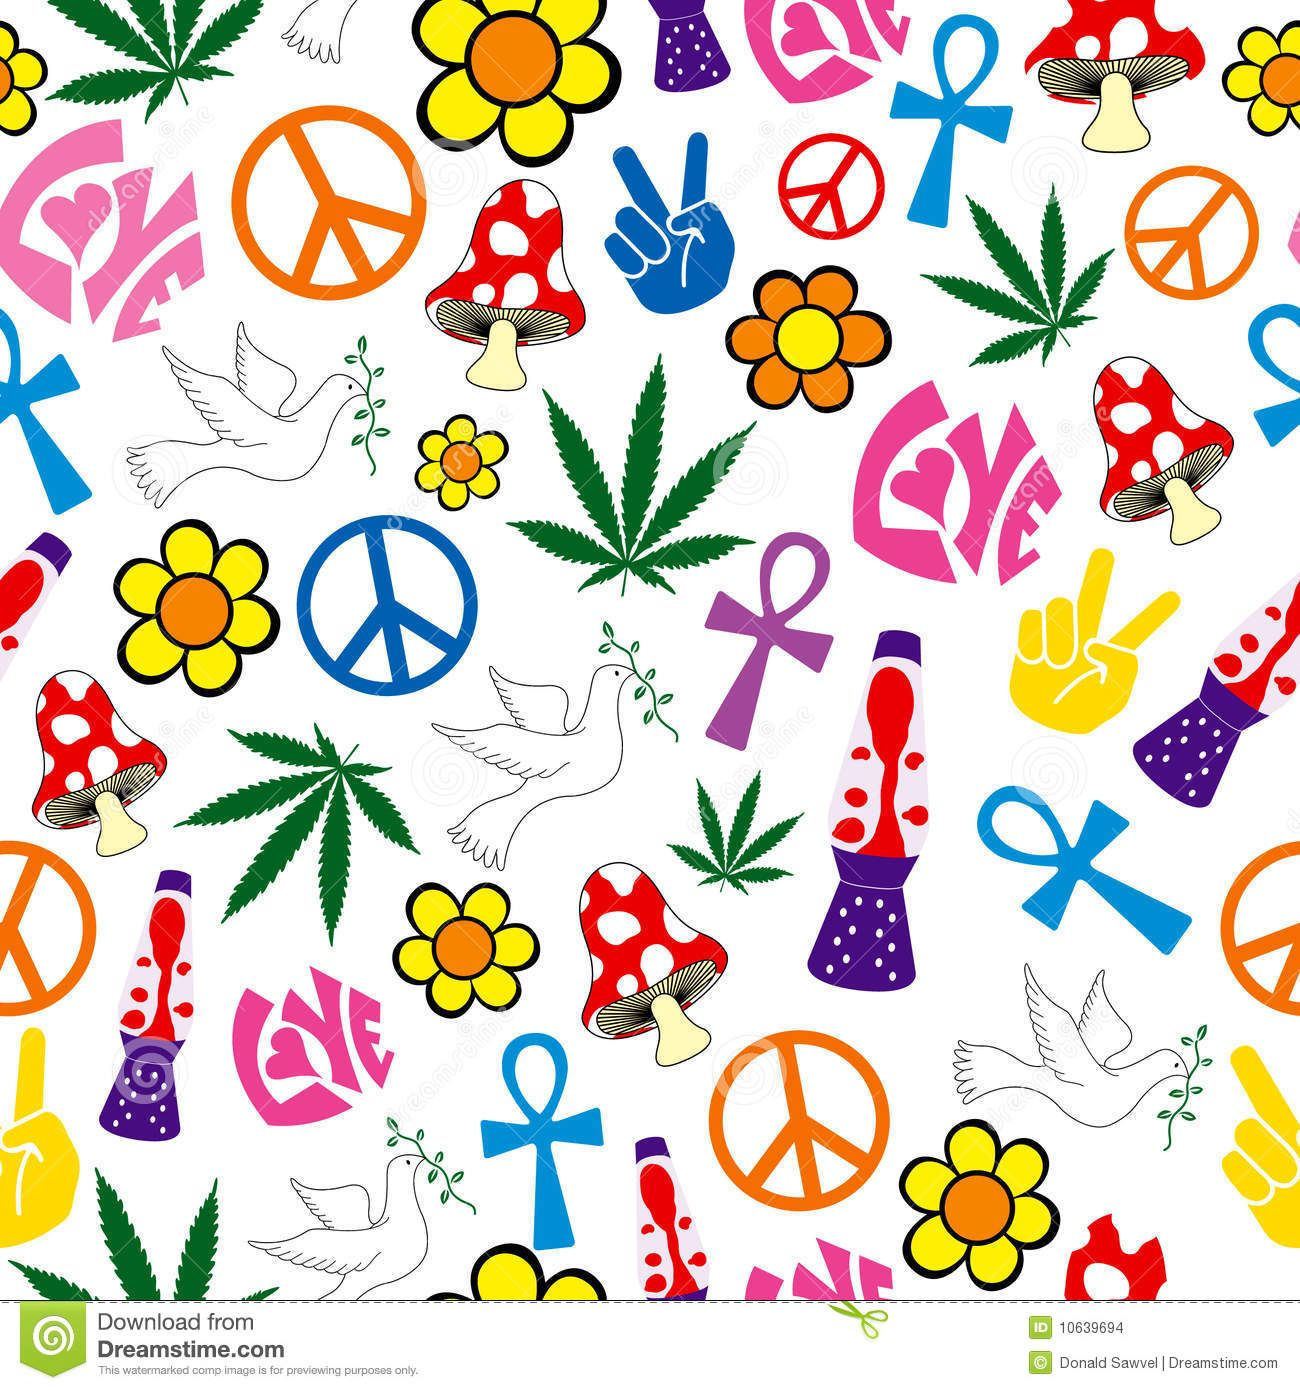 Peace love happiness wallpaper cool seamless 60s icons background peace love happiness wallpaper cool seamless 60s biocorpaavc Image collections